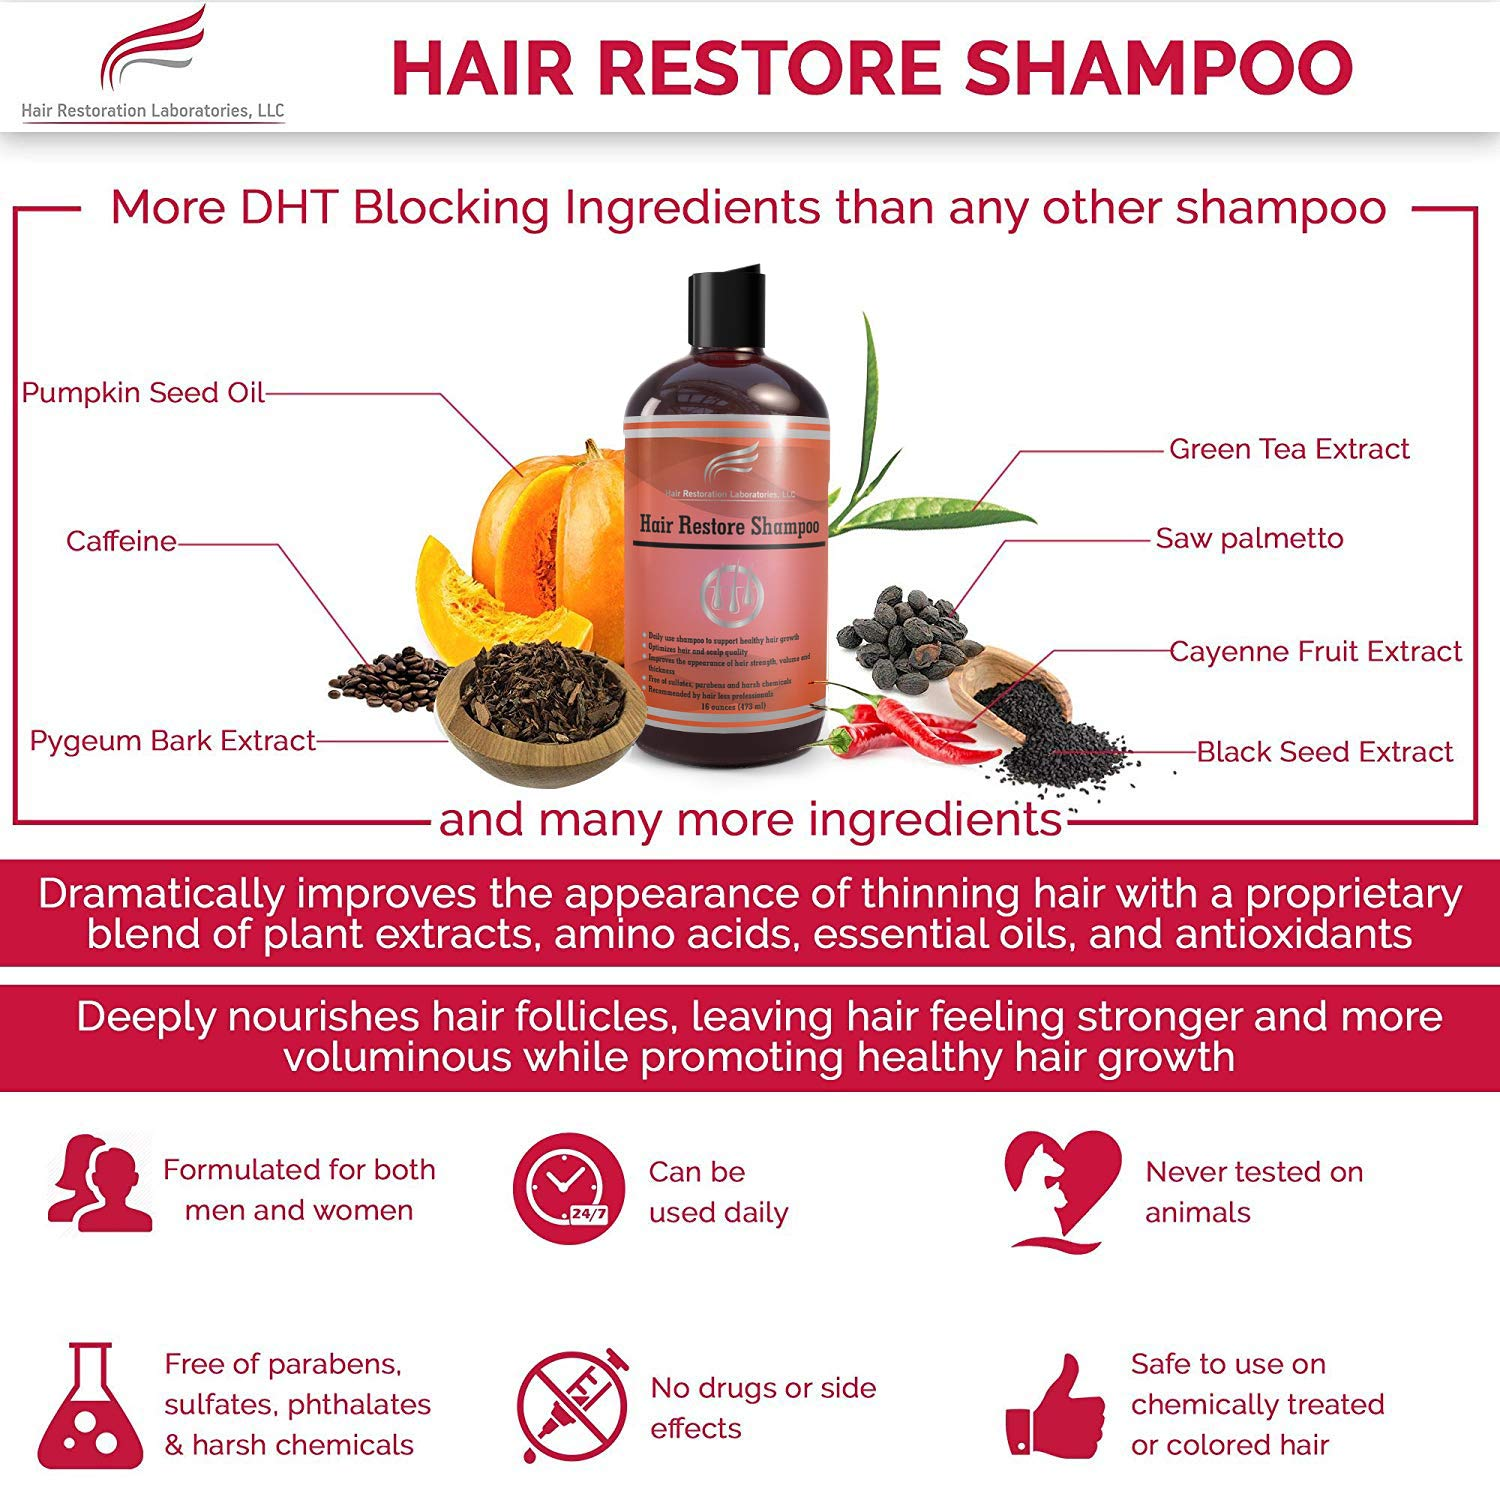 Hair Restoration Laboratories Hair Restore Shampoo, DHT Blocker to Prevent Hair Loss, Sulfate-Free for Color Treated Hair, Effective Daily Use Hair Thickening Thinning Hair for Men and Women, 16 oz: Beauty